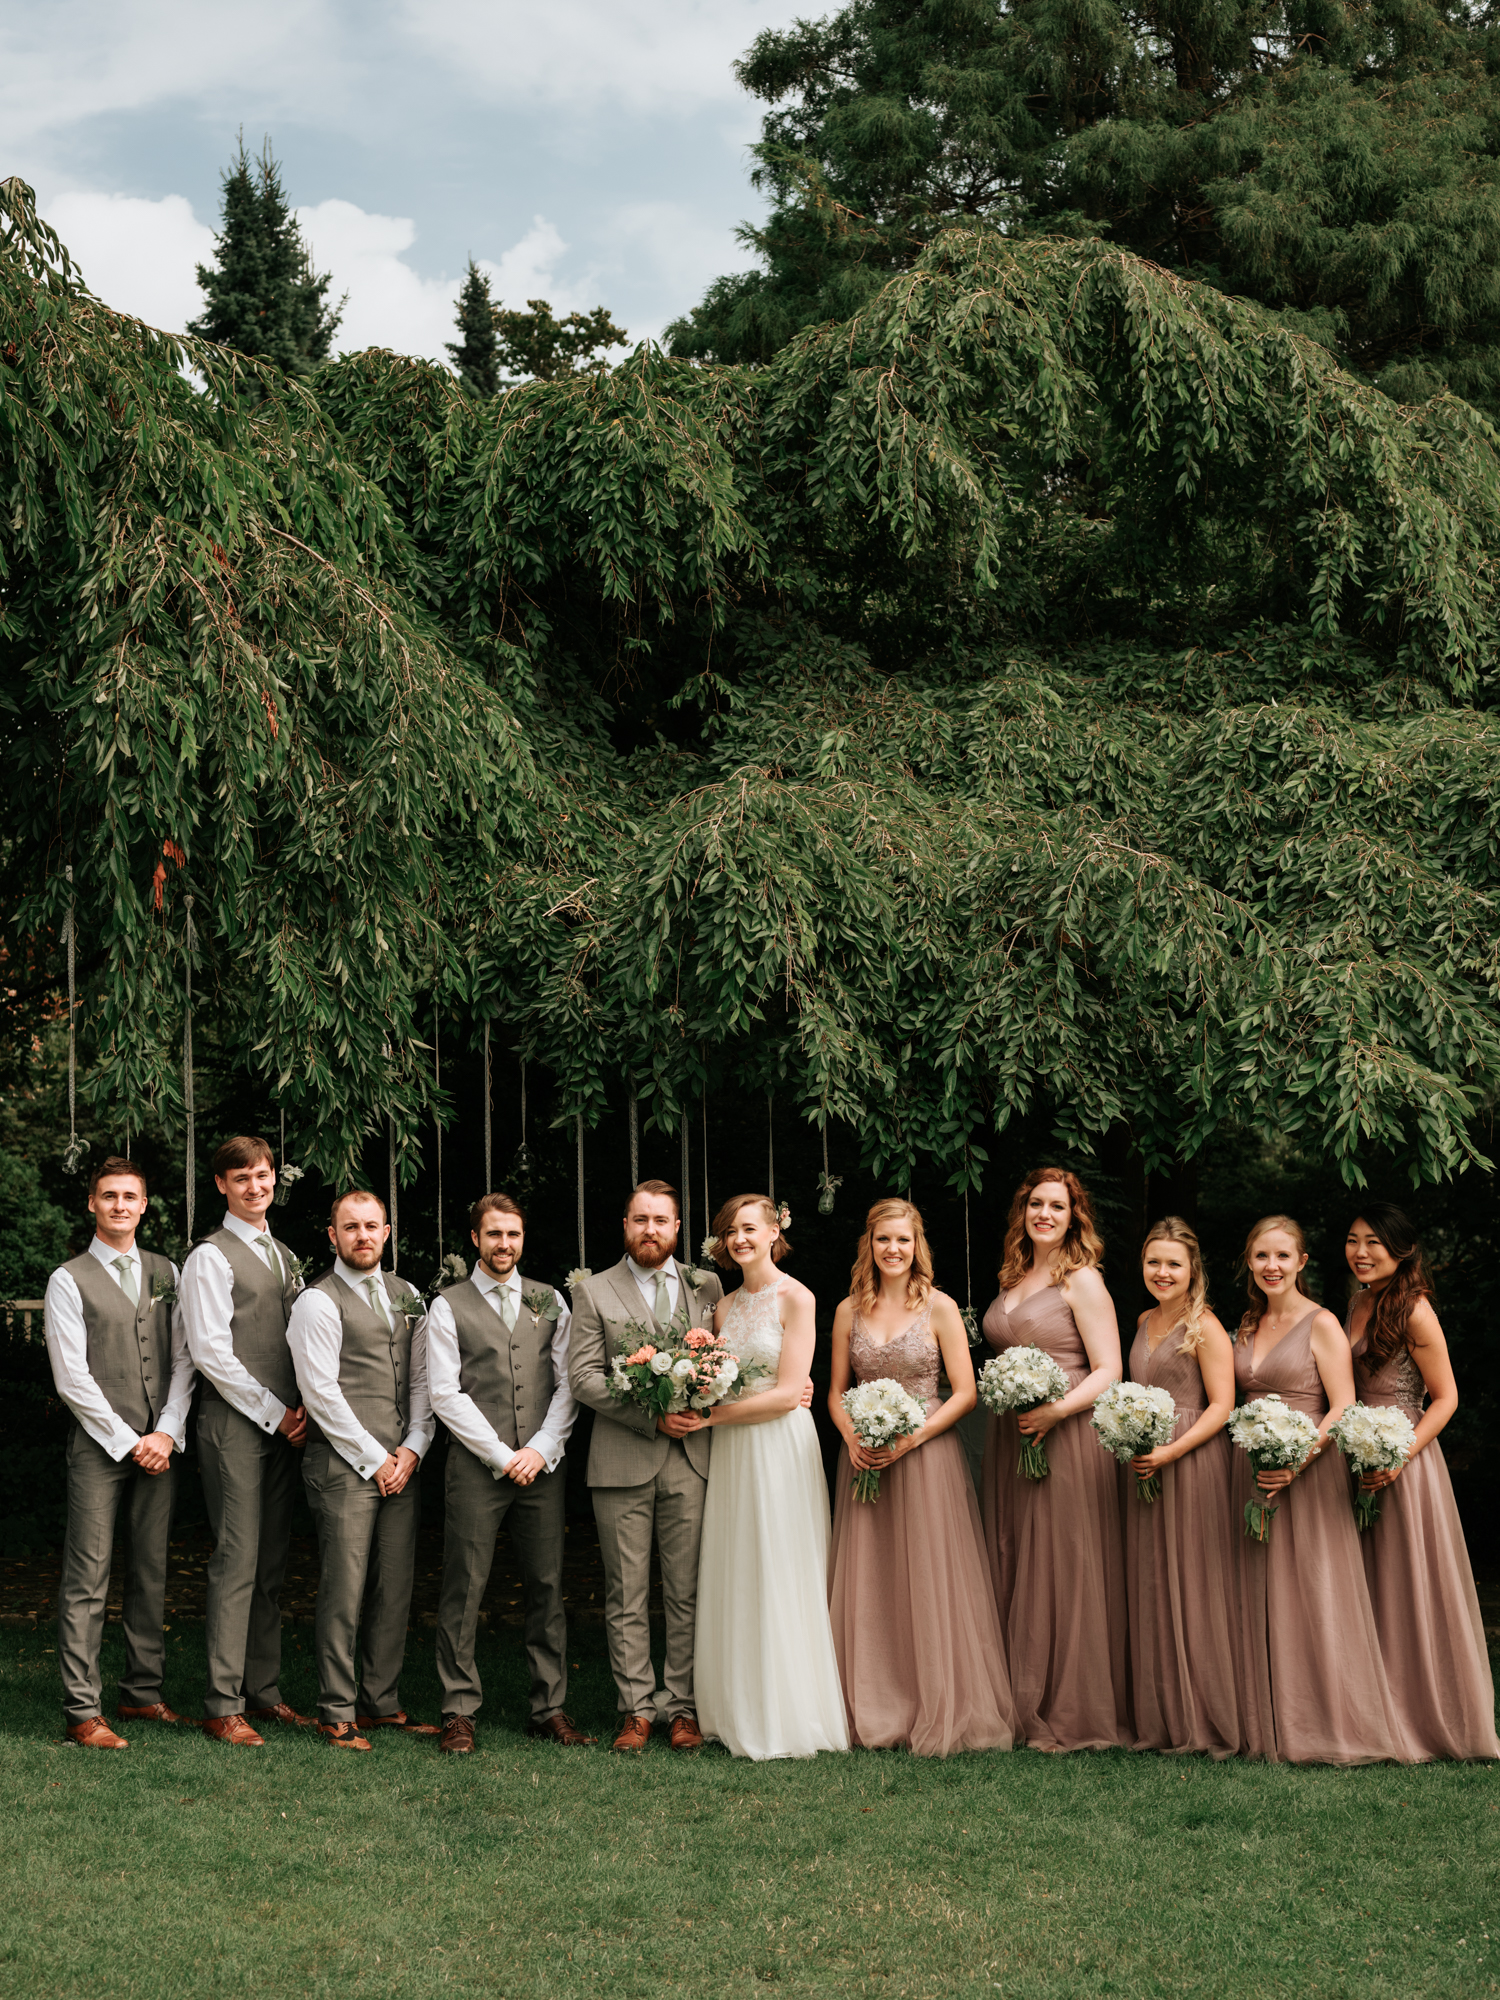 Stolen Glimpses Seattle Wedding Photographer Hidden Meadows Wedding 81.jpg